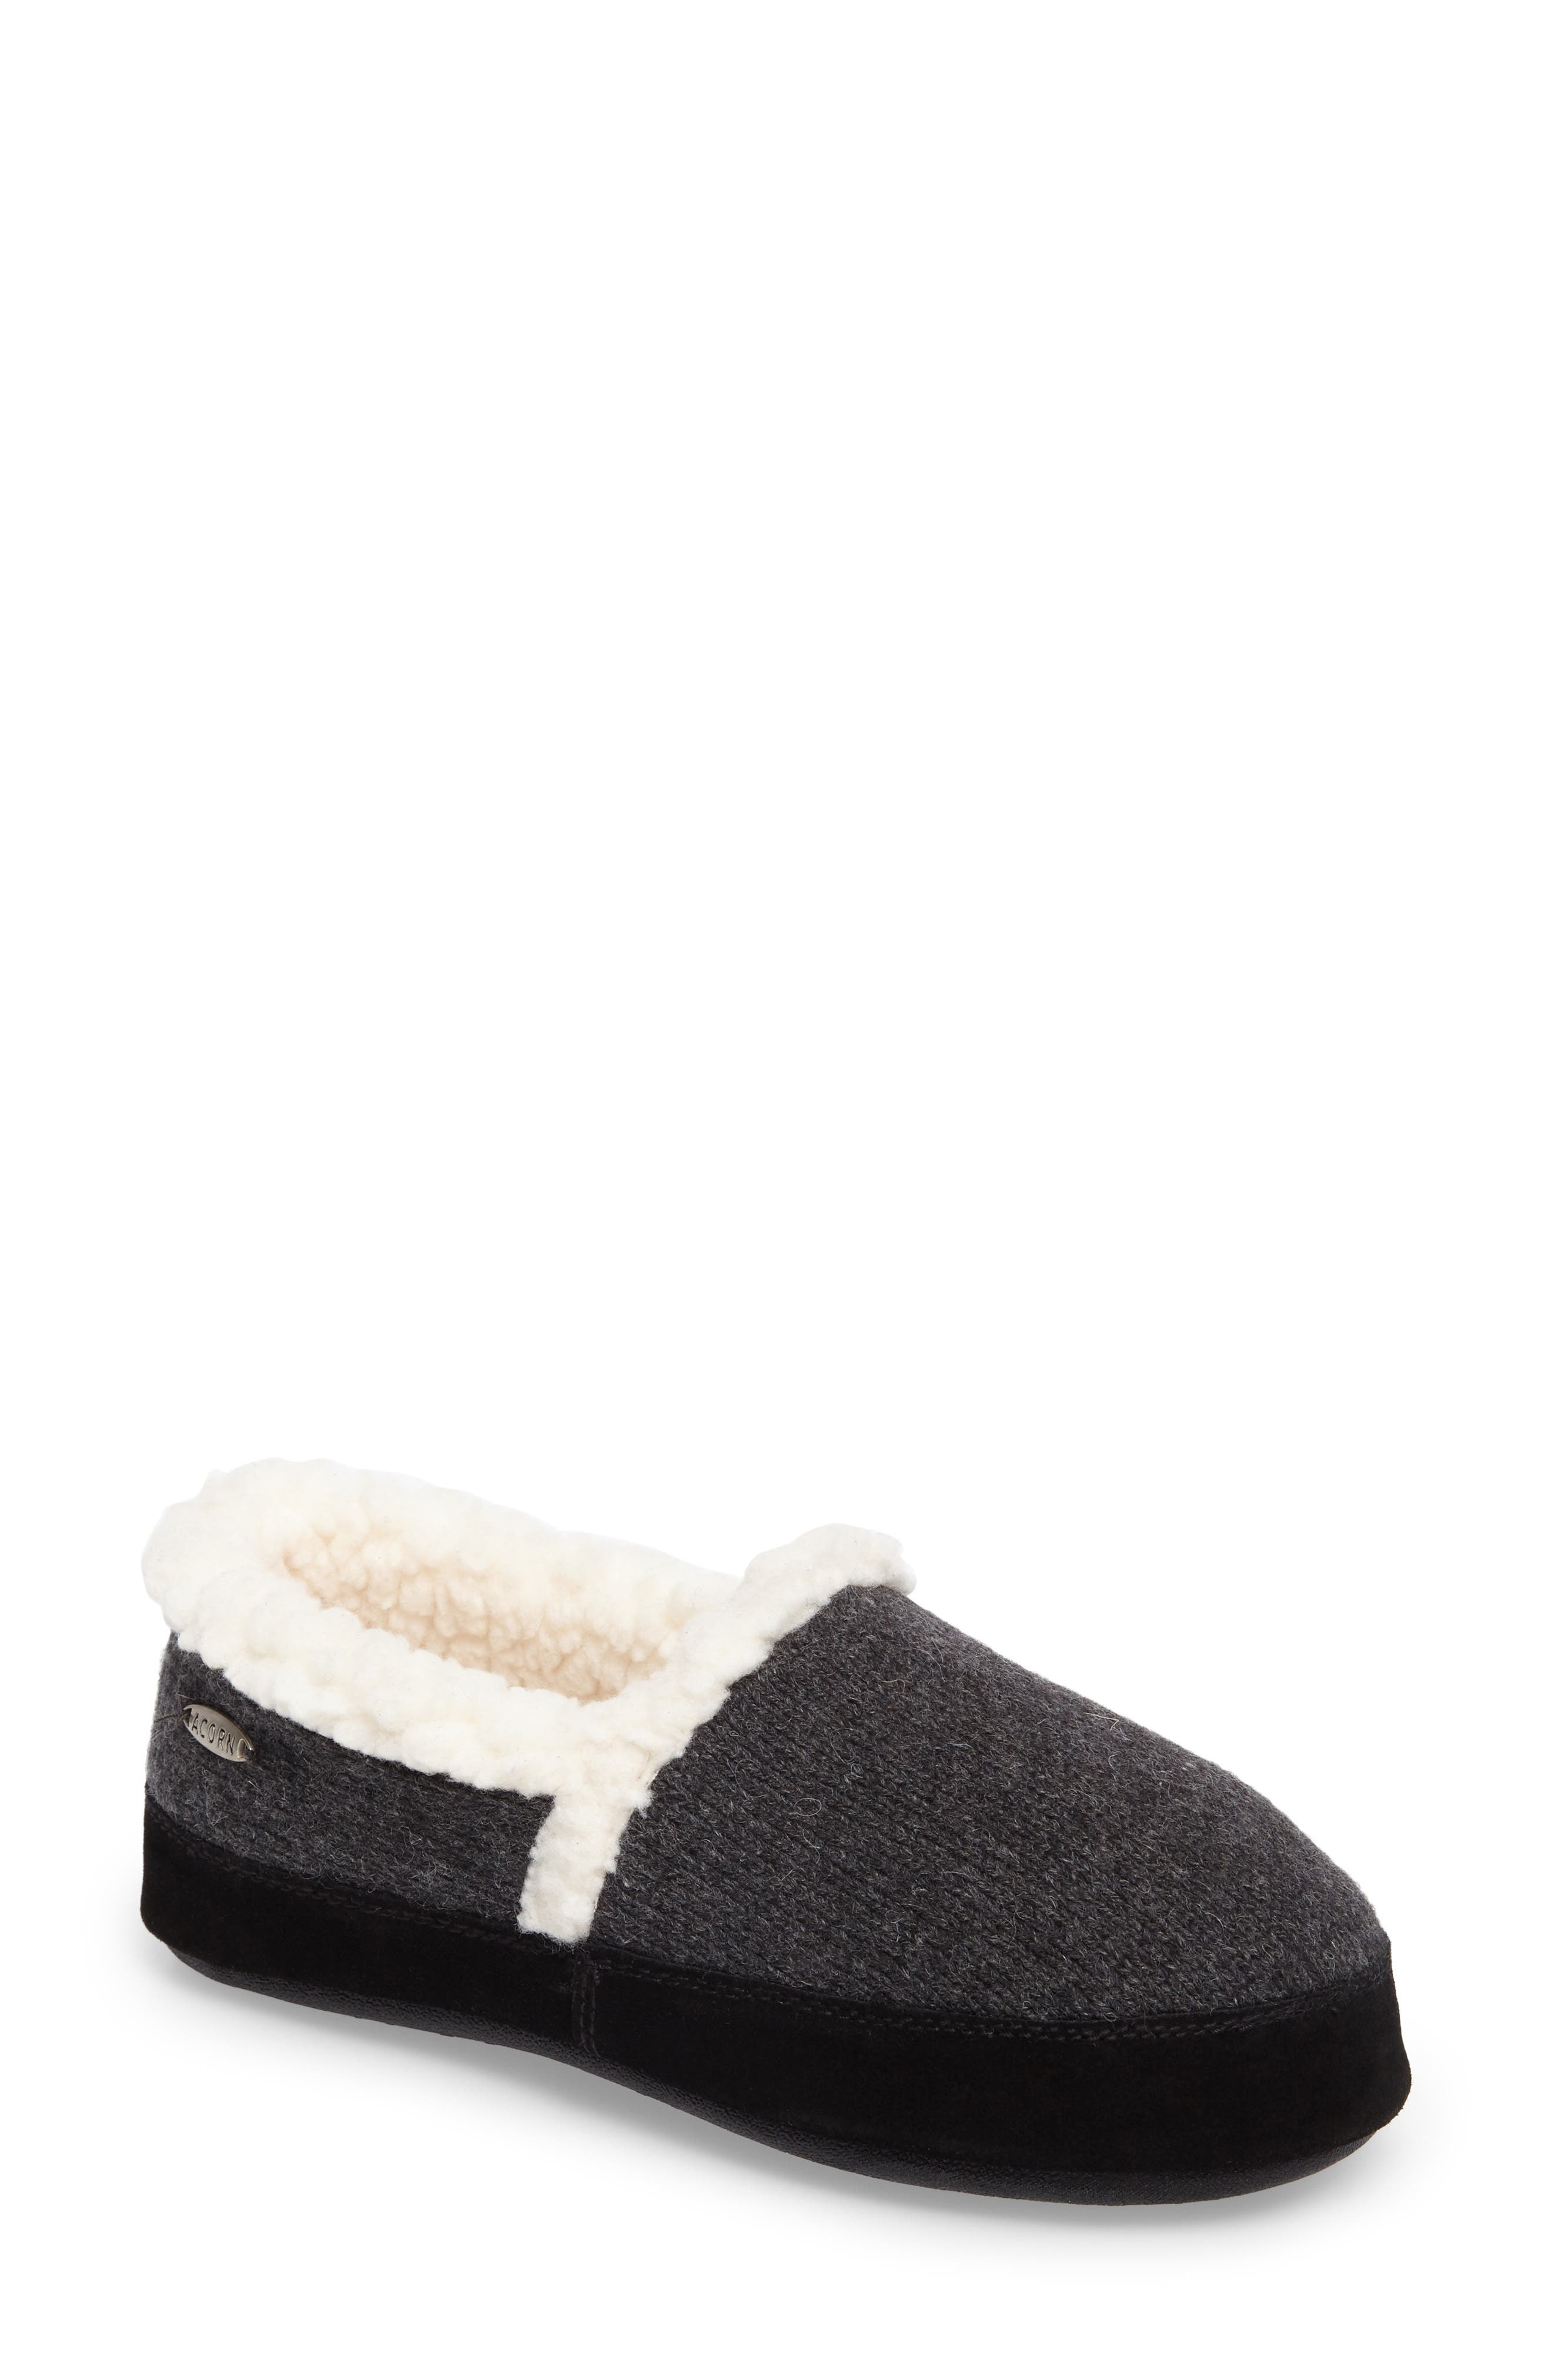 Alternate Image 1 Selected - Acorn Moc Ragg Slipper (Women)